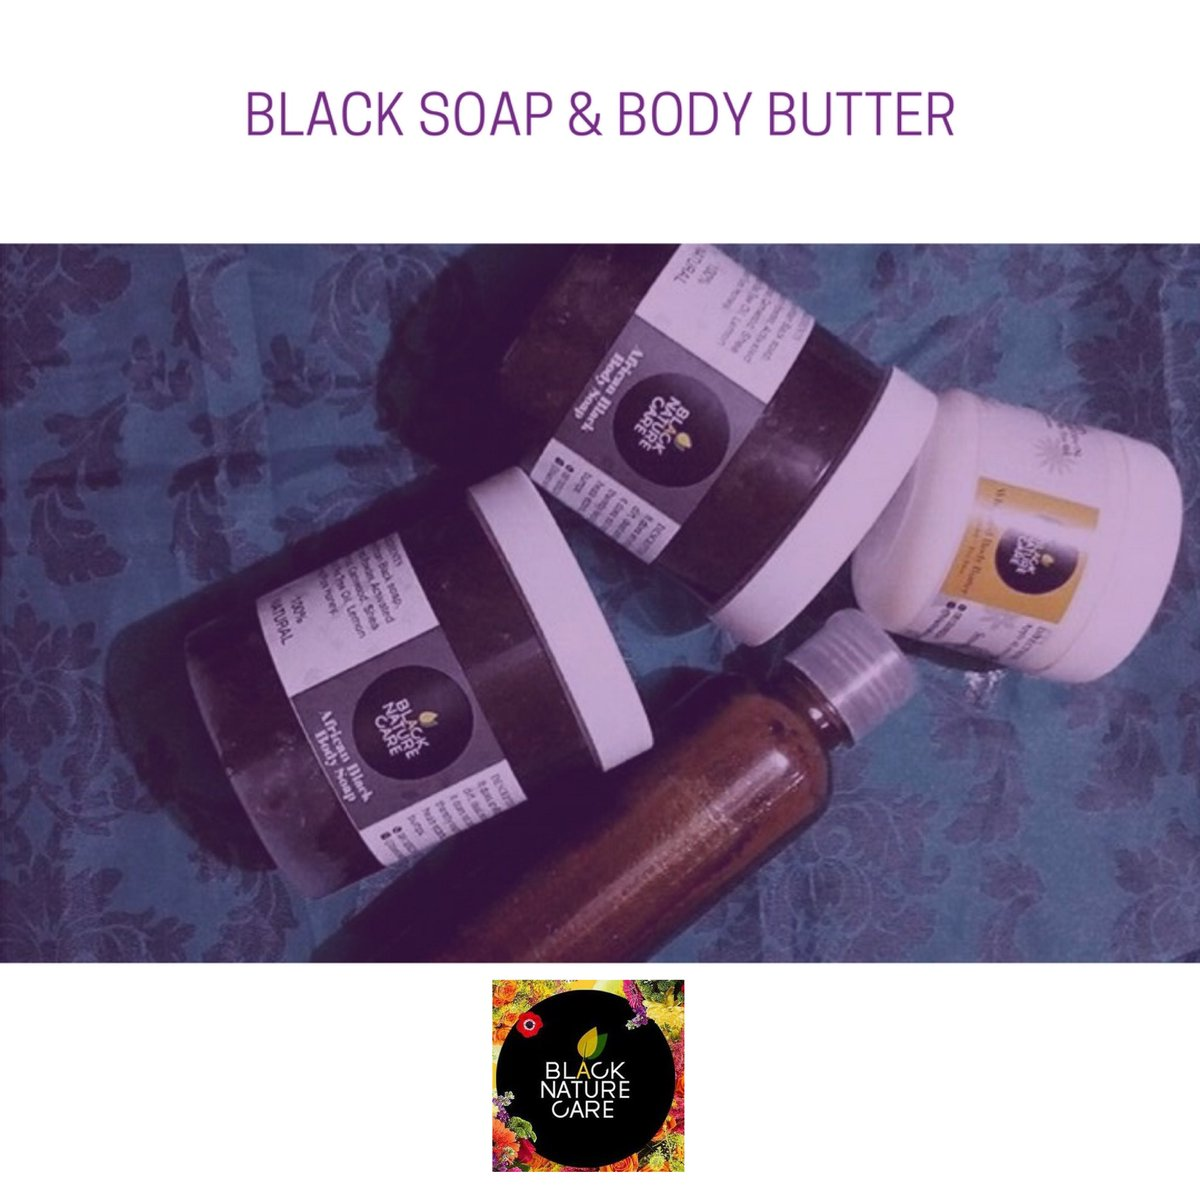 Black soap and body butter